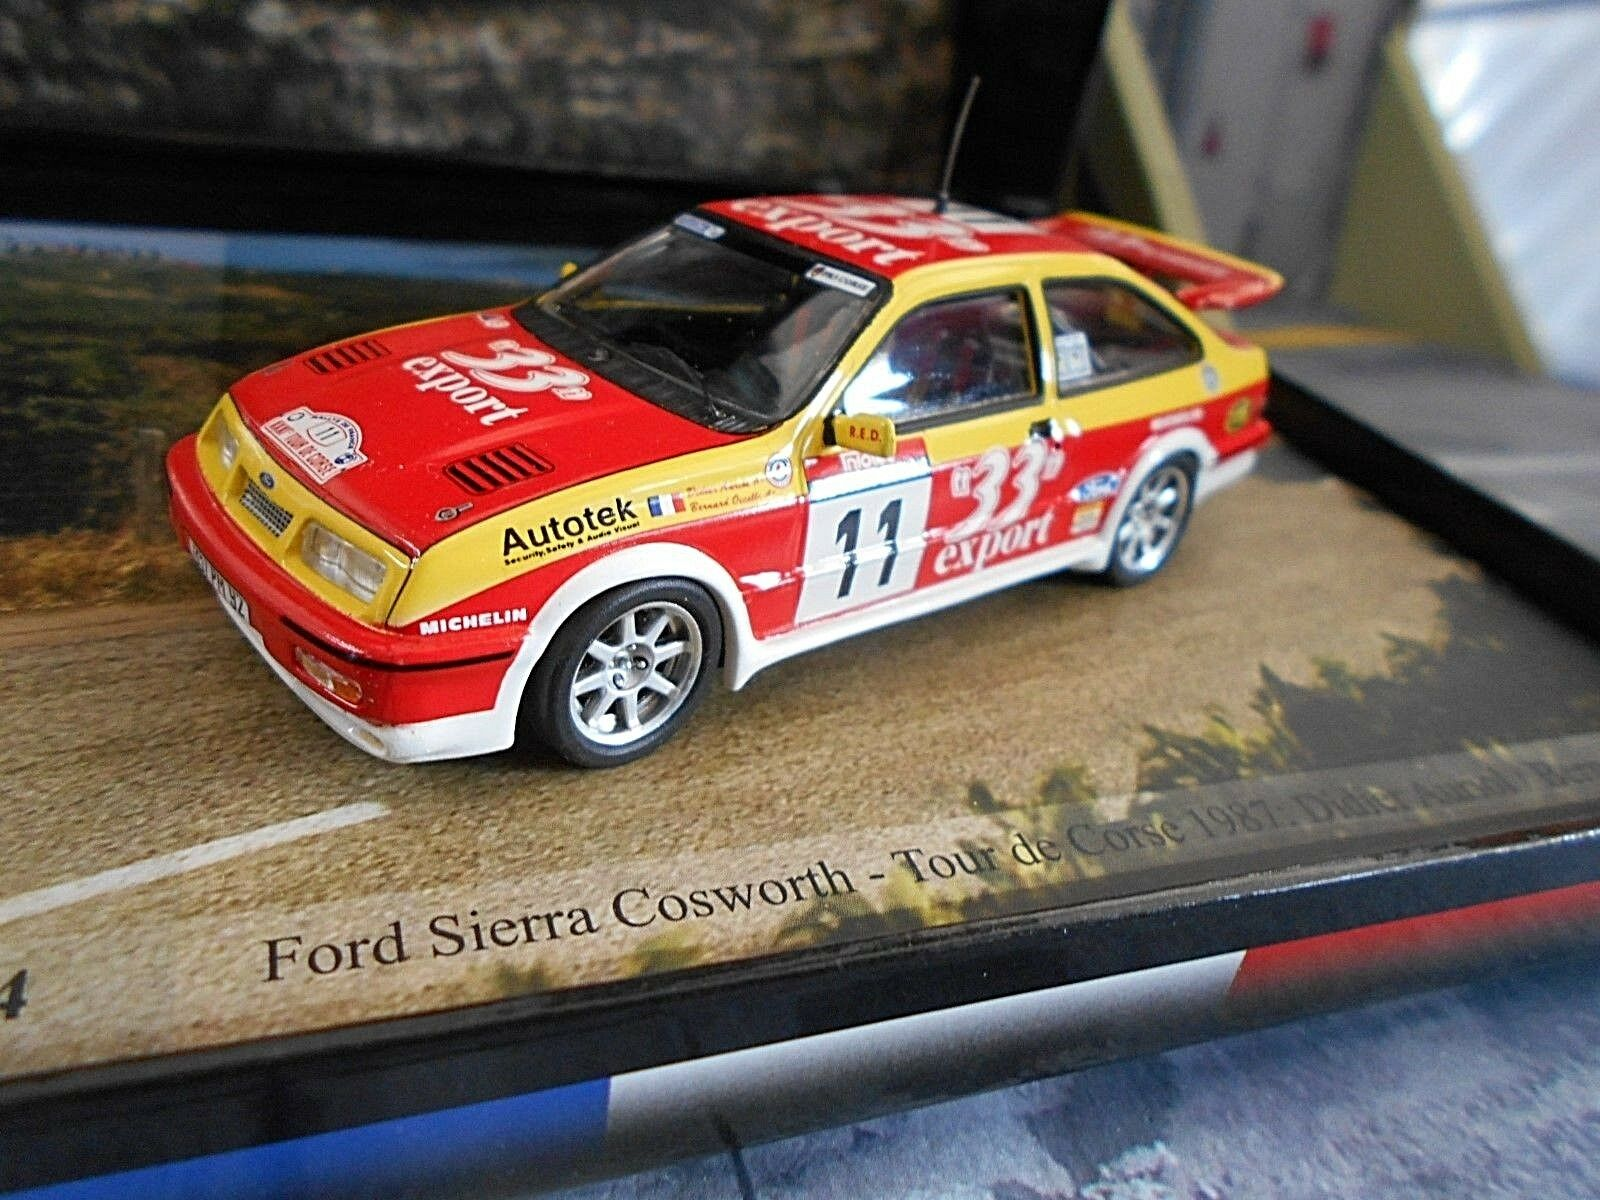 FORD Sierra RS Cosworth Rally Tour de Corse 1987  11 Auriol 33 EXP Trofeu 1 43